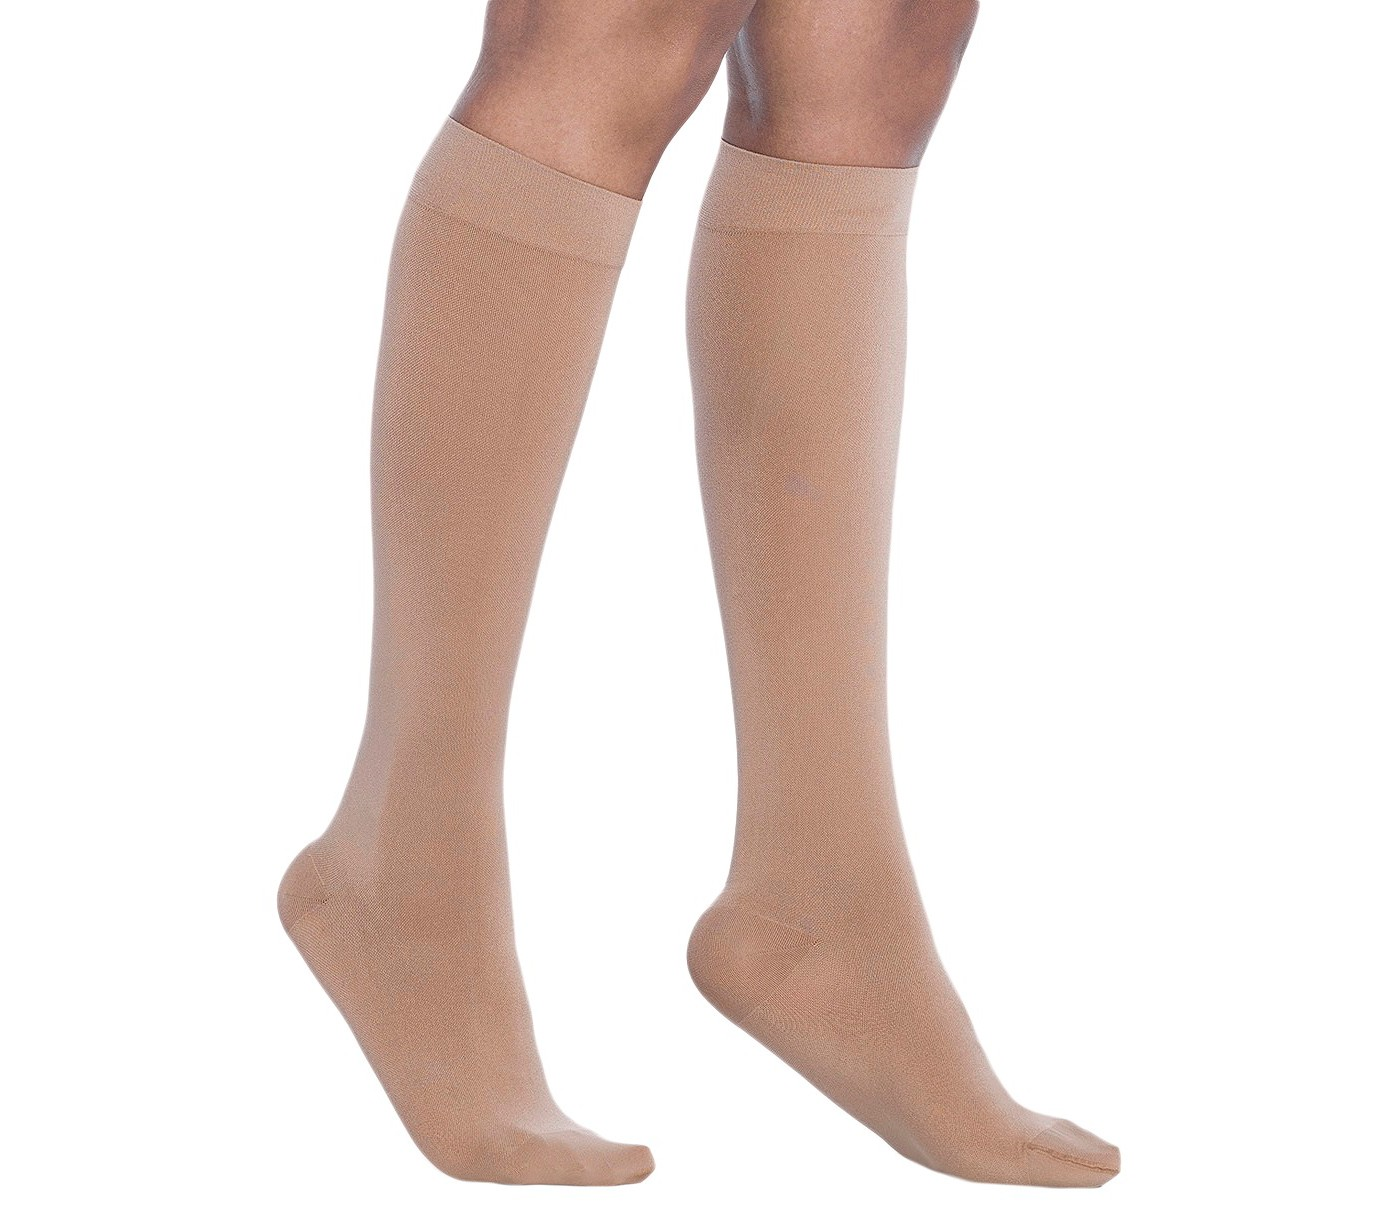 HTB1PyfsbiDxK1Rjy1zcq6yGeXXaw - 20-30 mmHg Compression Socks For Women and Men Medical